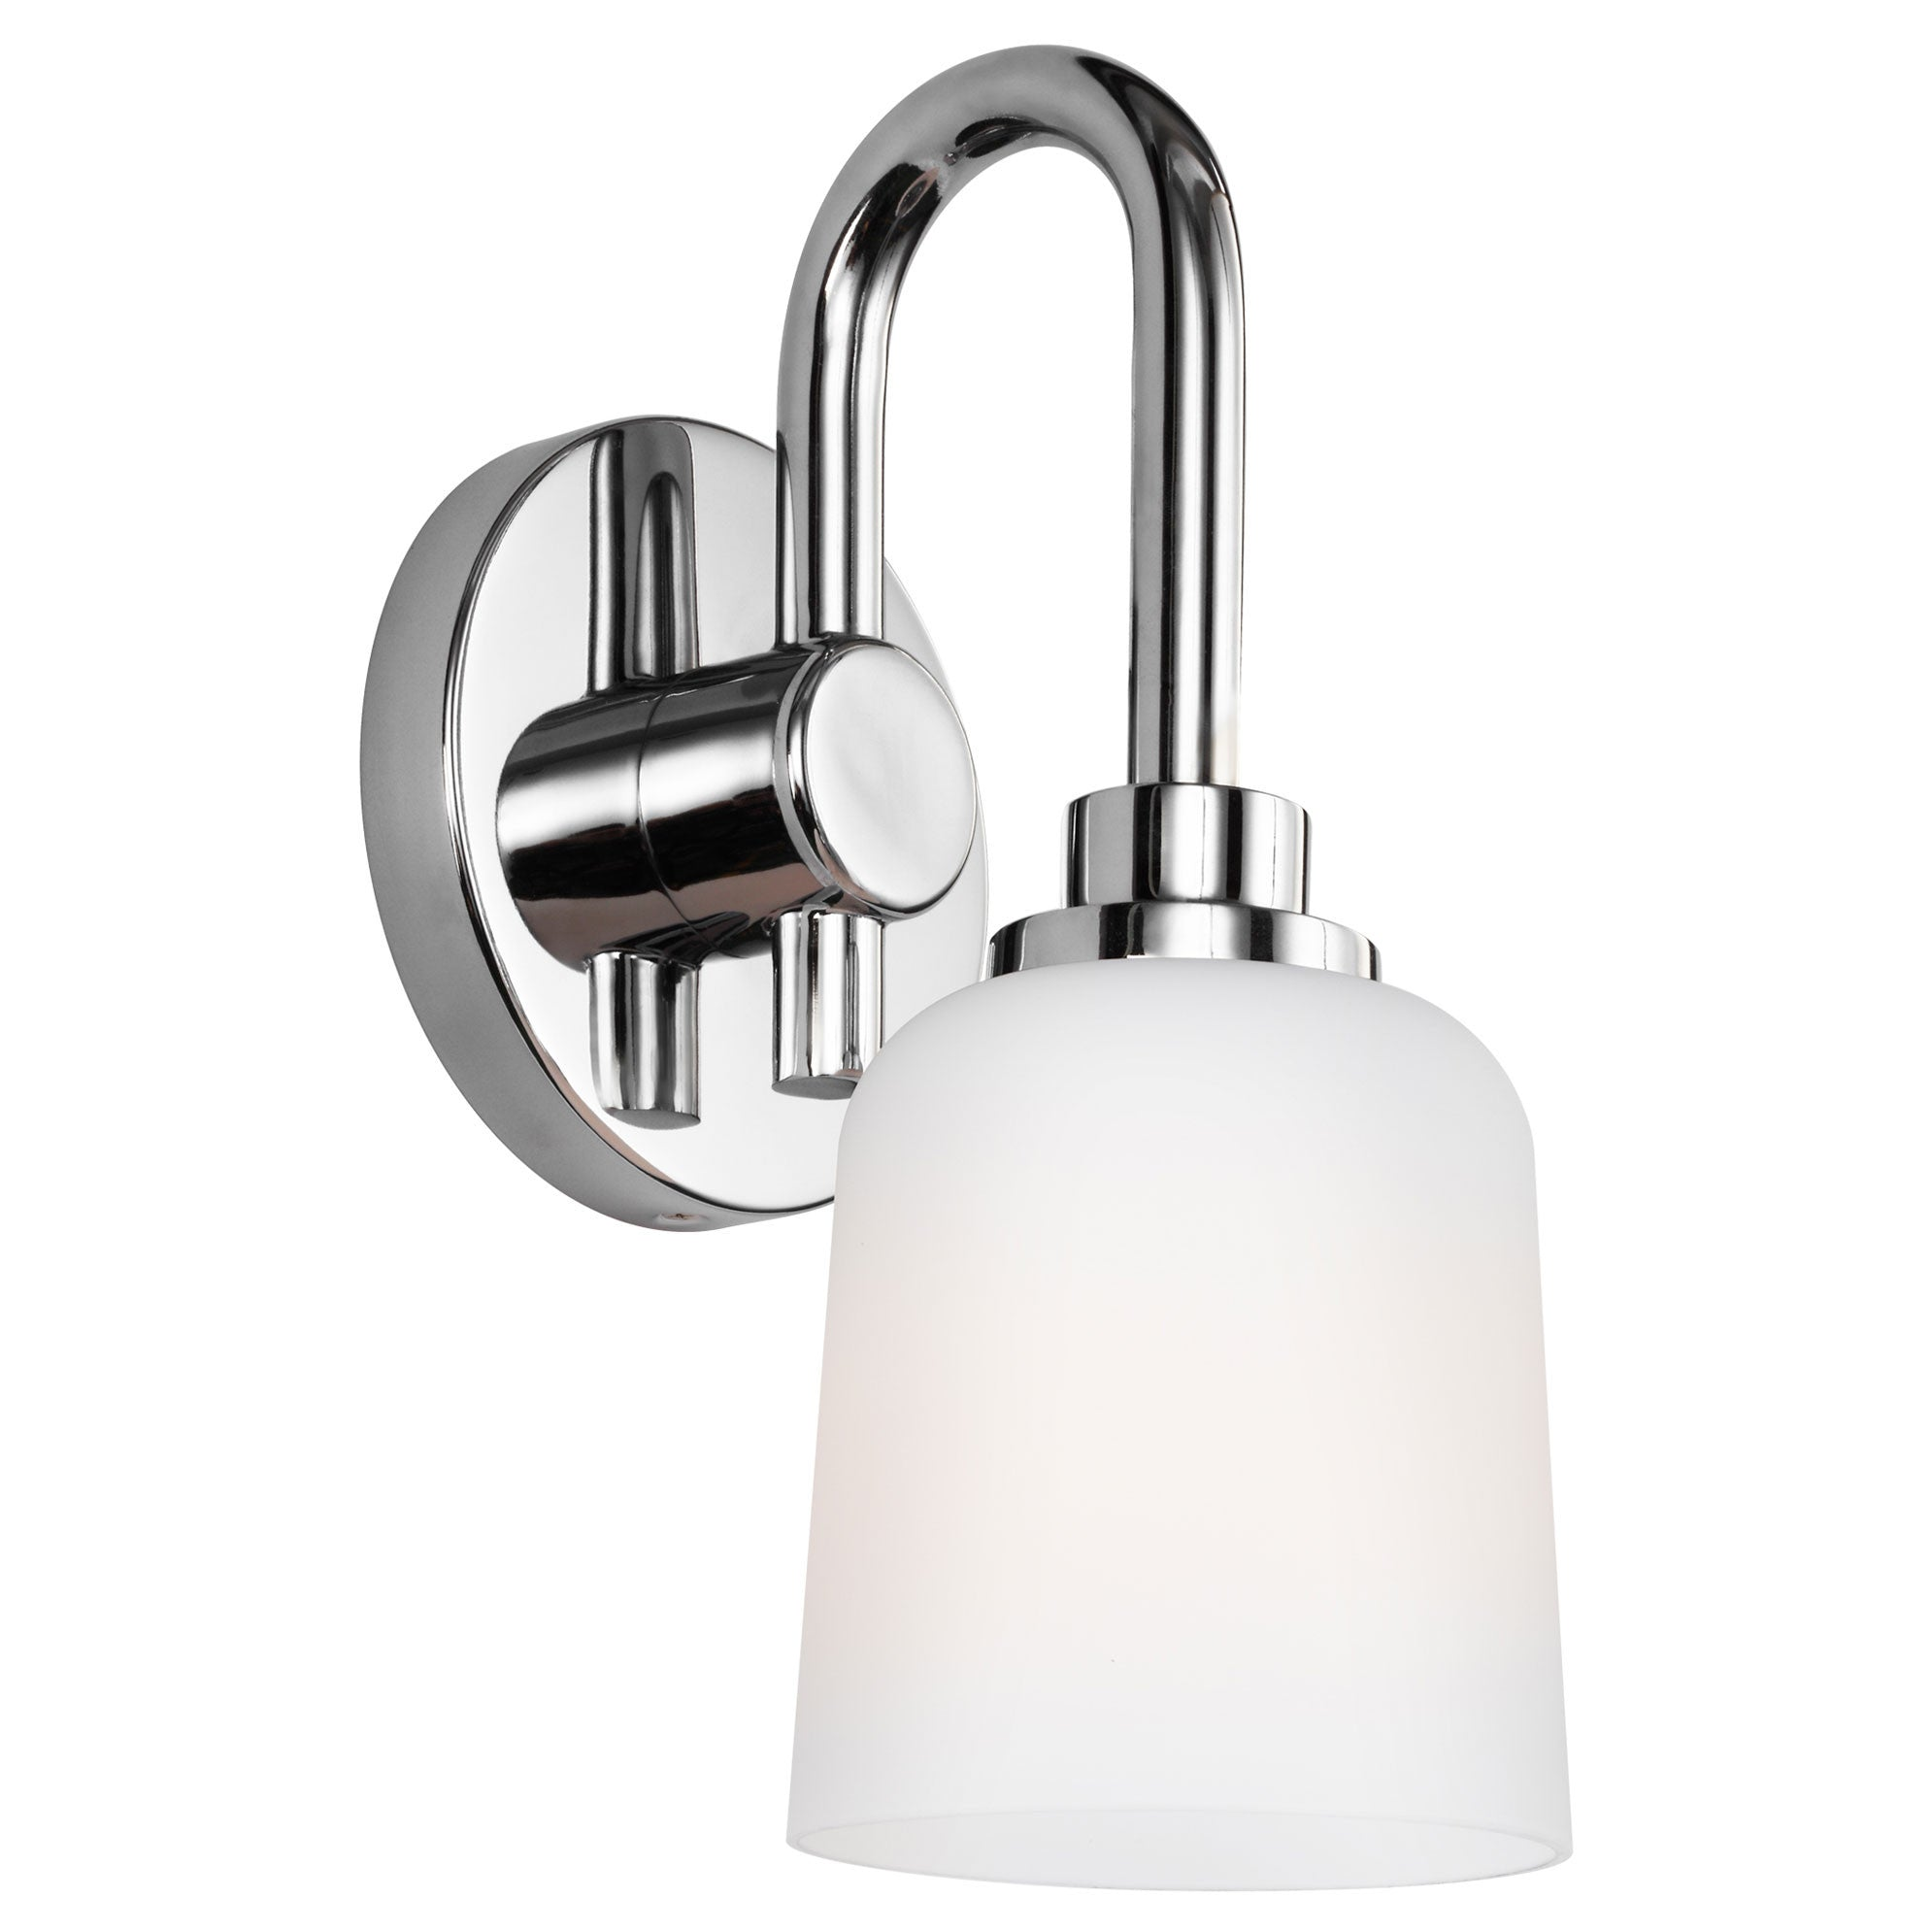 Feiss 1 Light Reiser Bath Light in Chrome VS23901CH